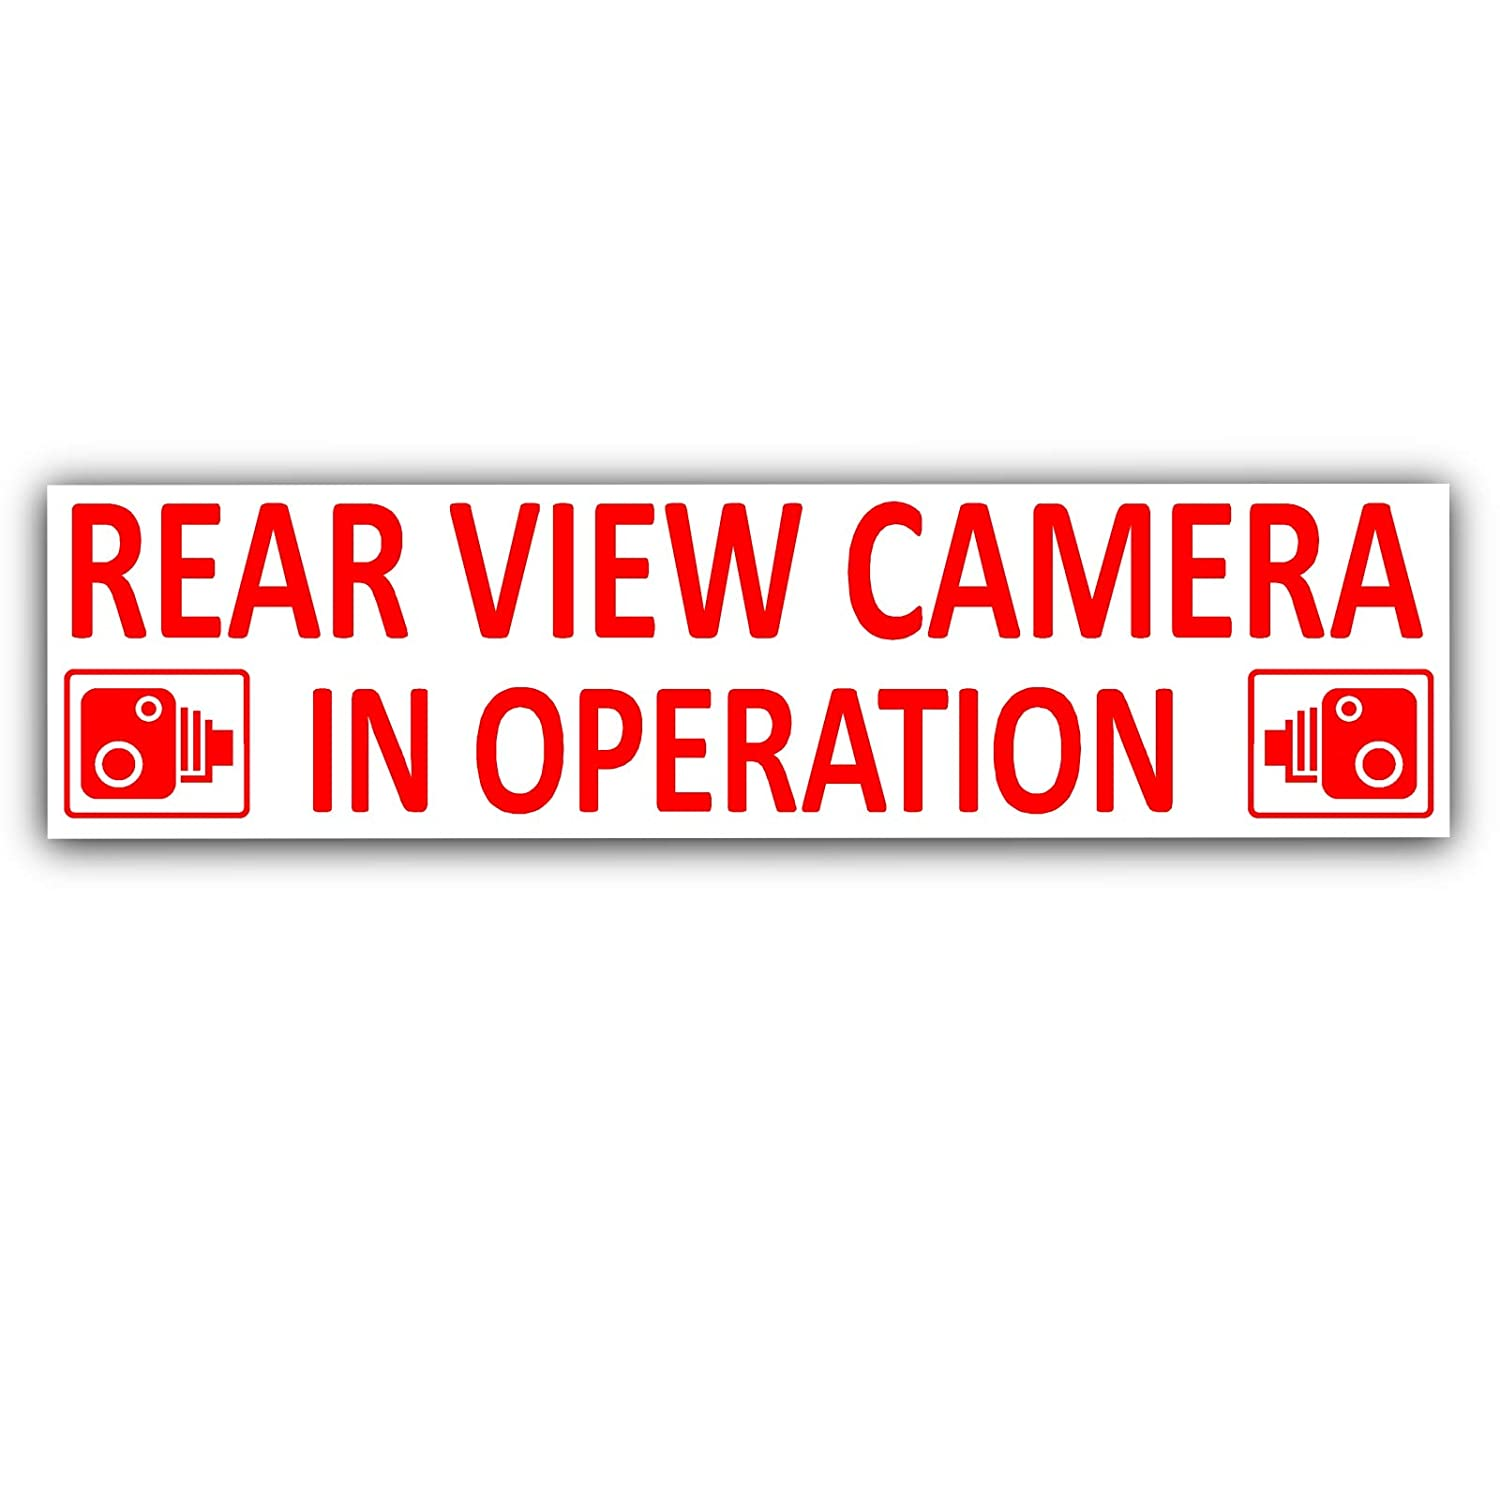 Platinum Place 1 x Rear View Camera In Operation Stickers-EXTERNAL CCTV  Signs-Van,Taxi,Car,Cab RED on WHITE,Lorry,Truck,Bus,Mini,Minicab Safety and